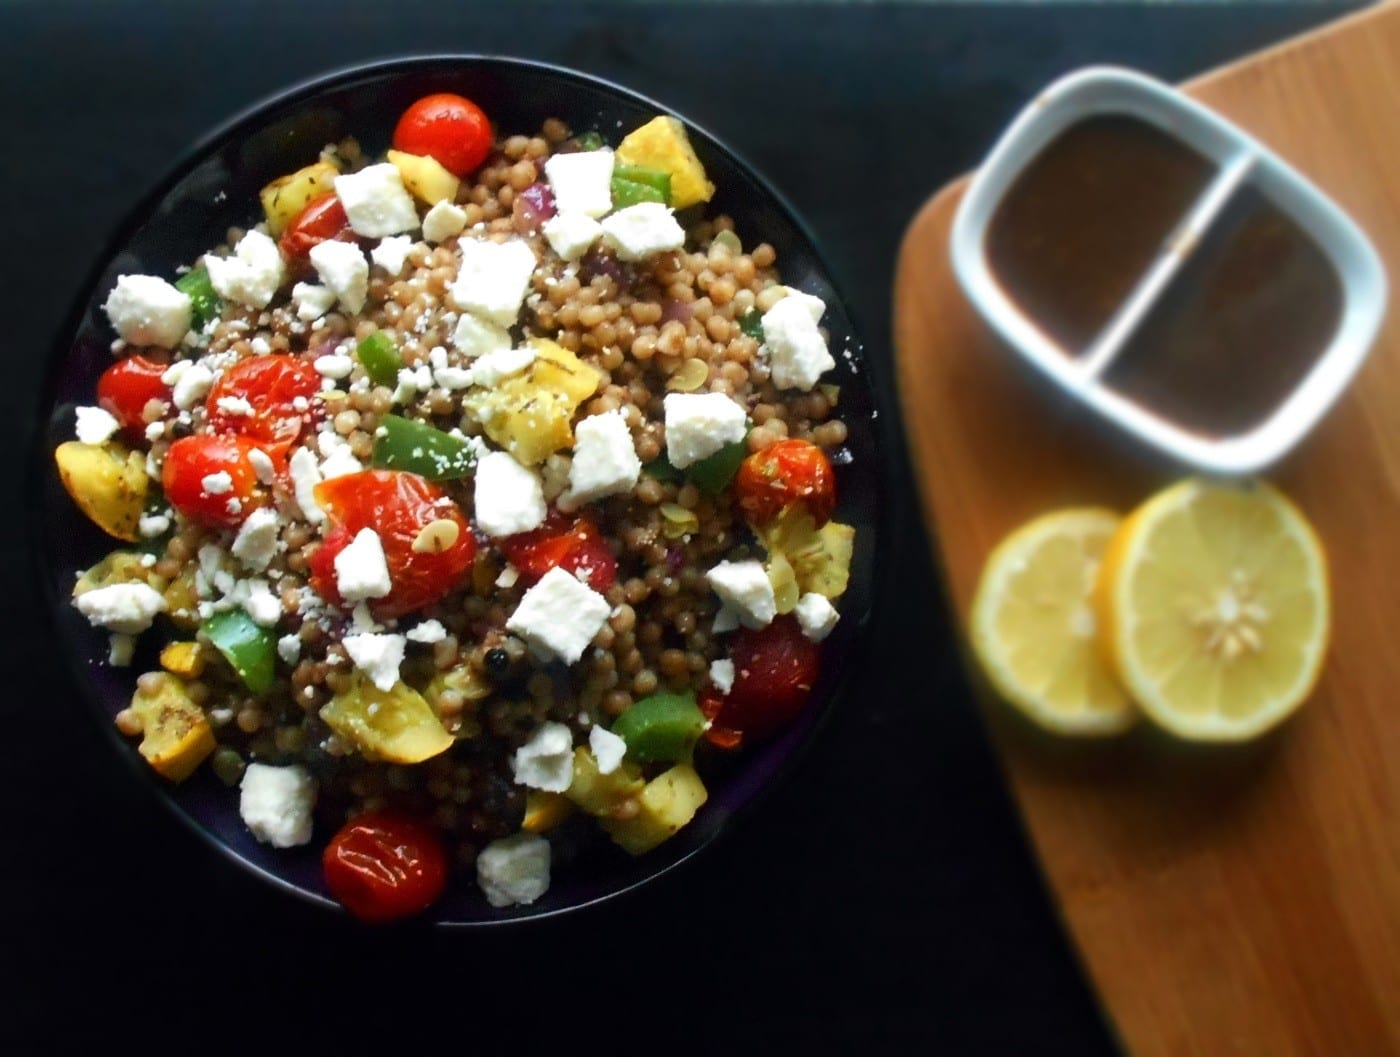 Mediterranean Couscous Salad. Healthy dinner recipe. Made with fresh veggies and light dressing. Couscous recipe that is easy to make